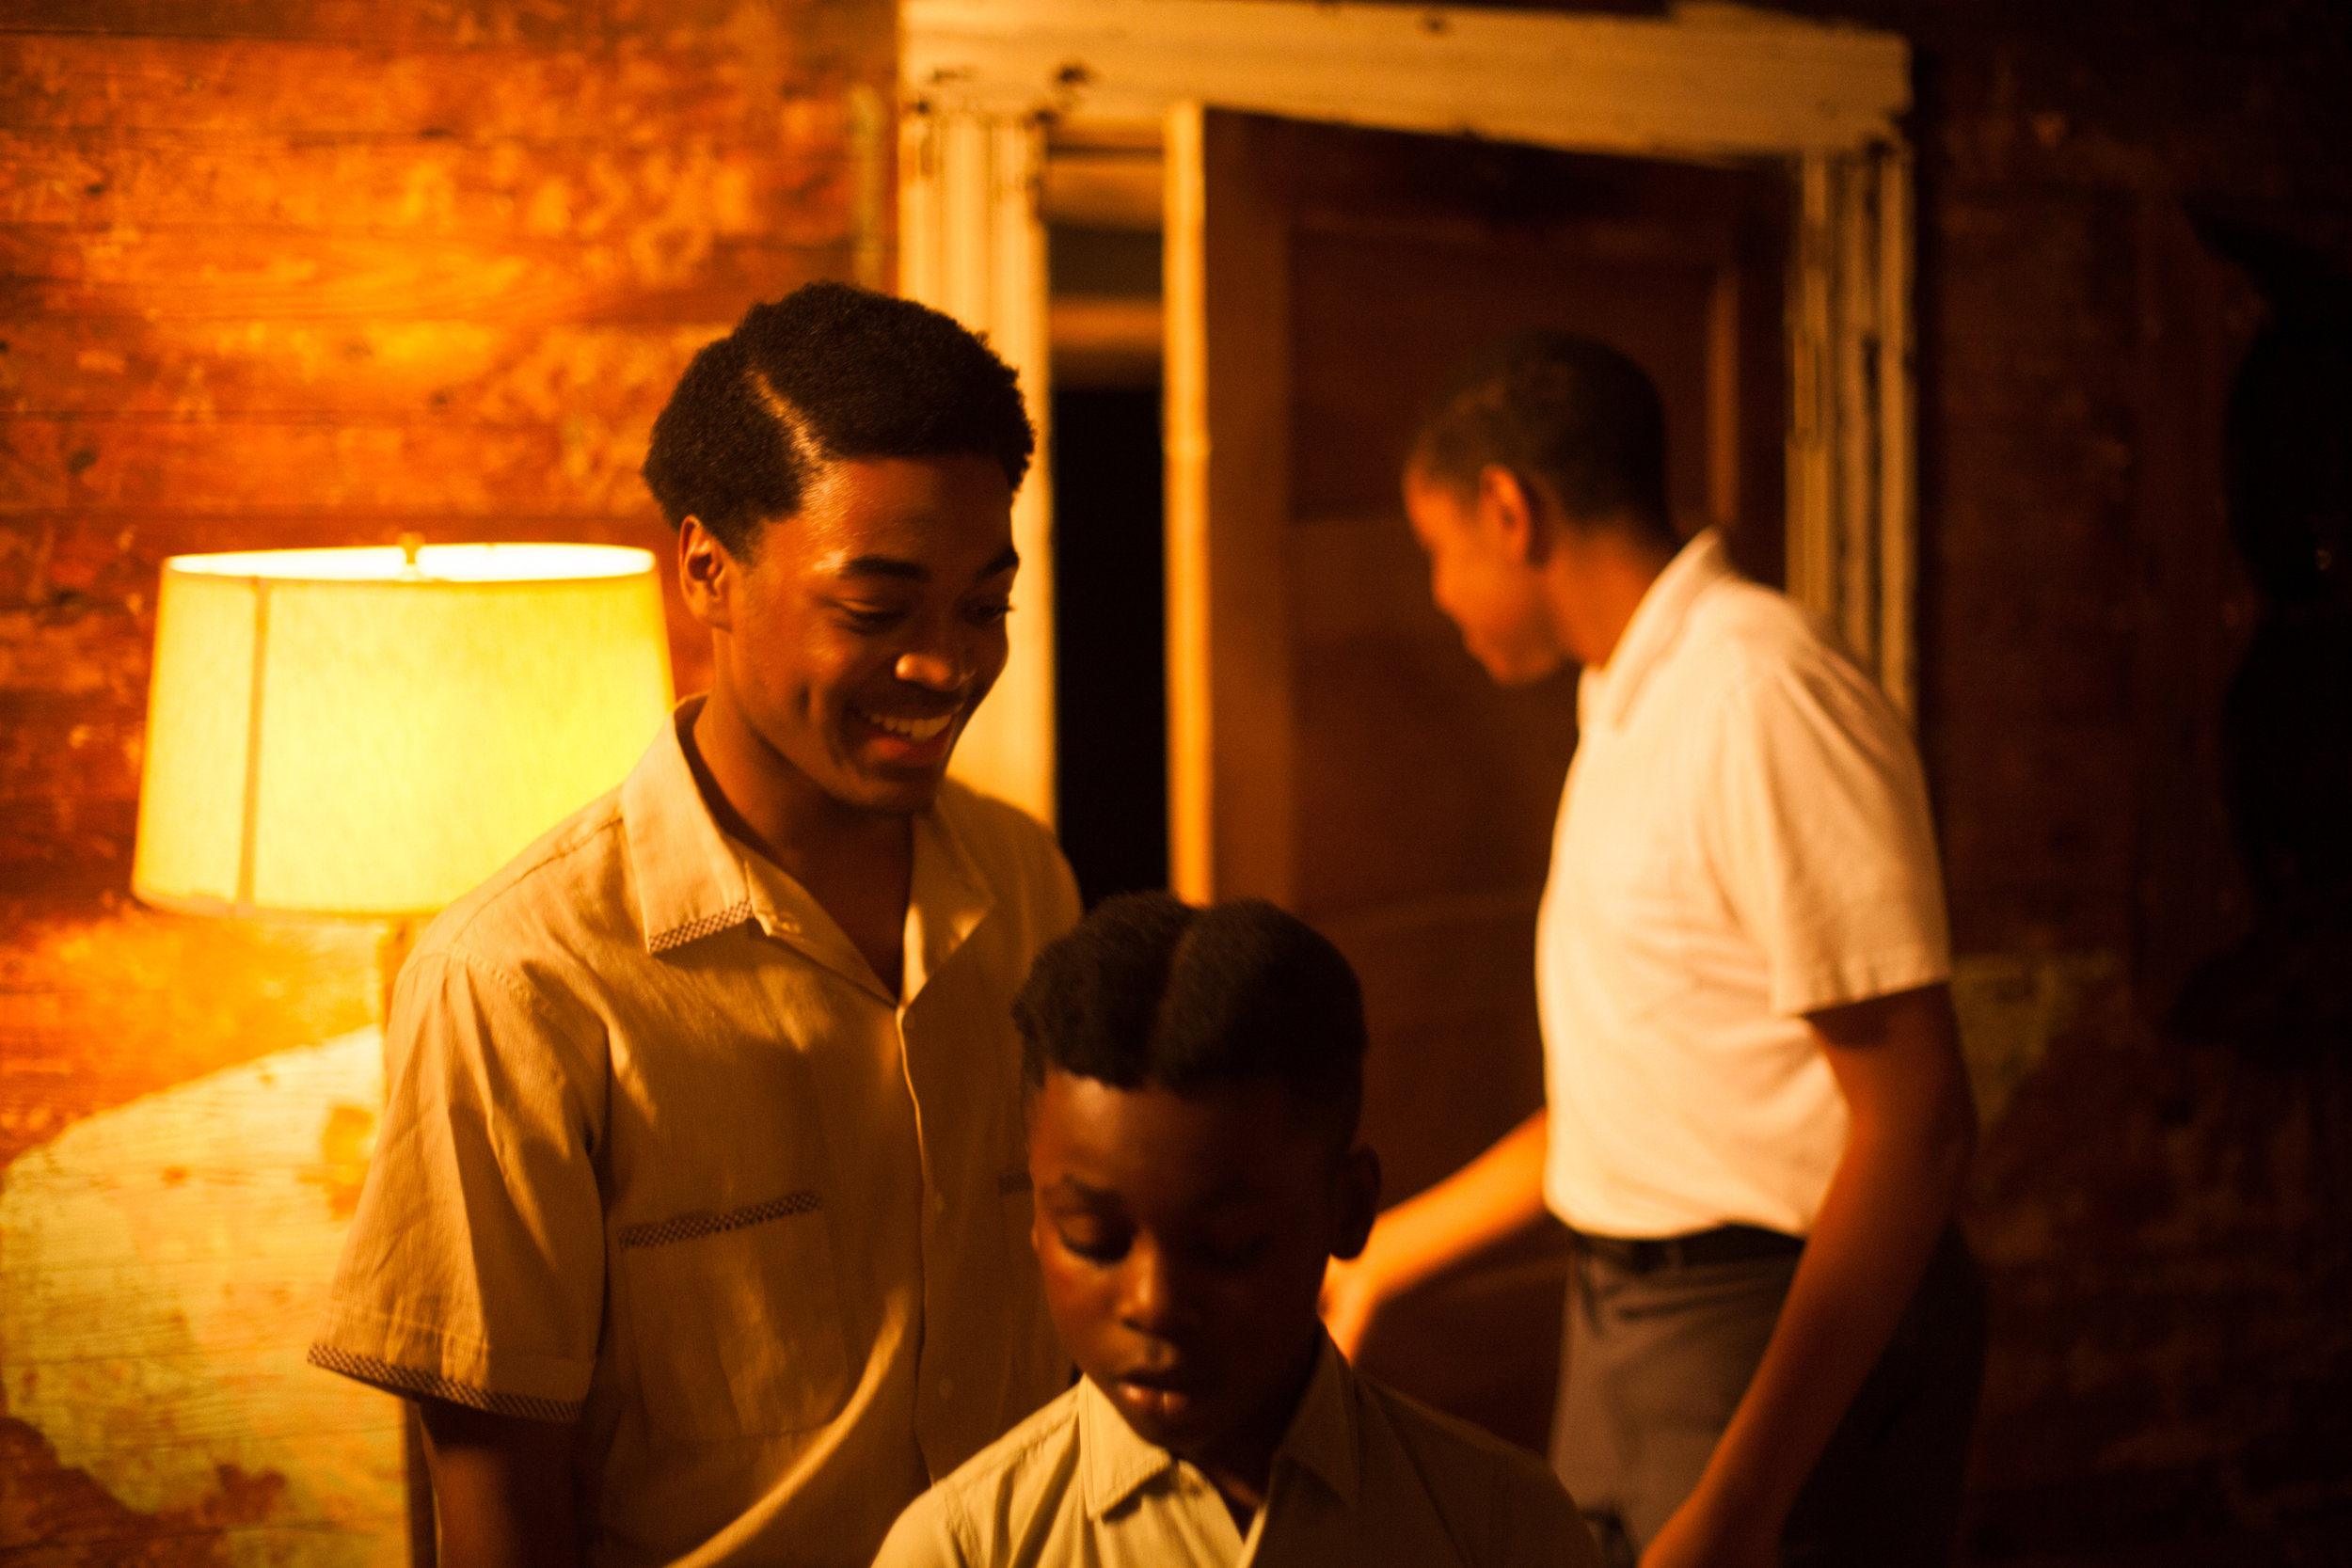 Dorian Davis as Maurice Wright, Ty Larry as Simeon Wright, and Joshua Wright as Emmett Till  Canon 5d